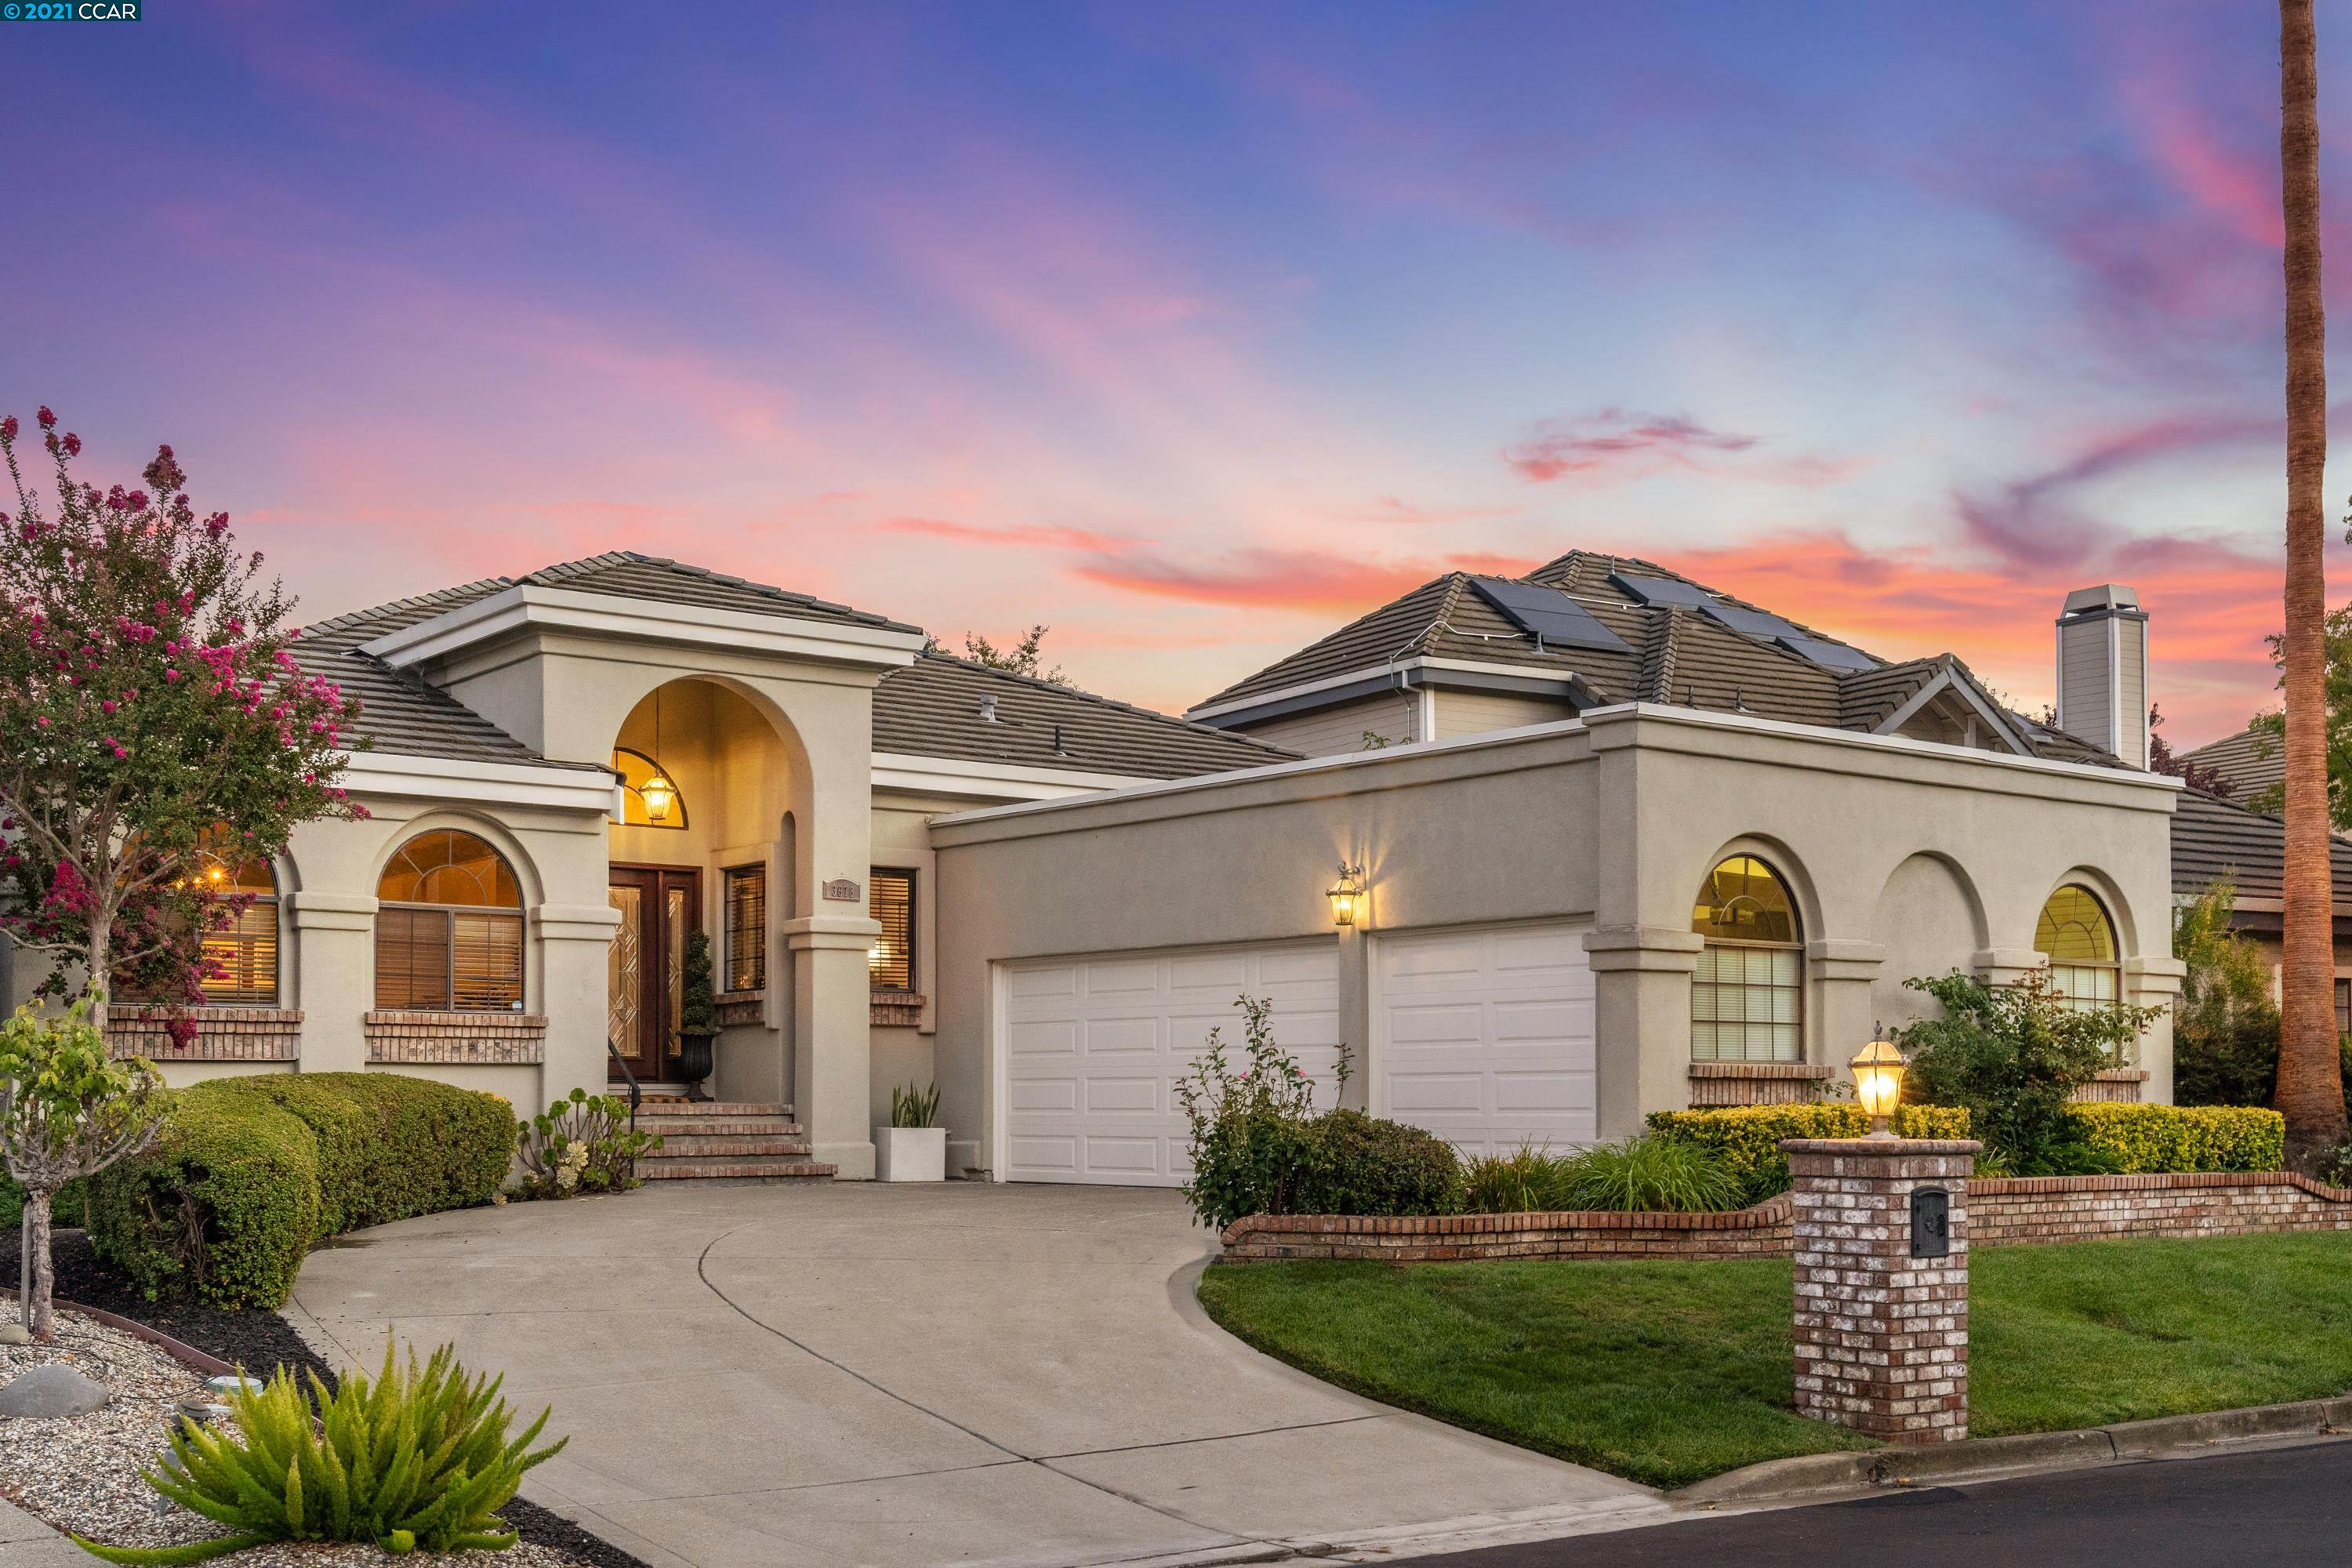 Located in the prestigious gated community of the Blackhawk CC, this stunning single lvl home sits on a premium lot overlooking the incredible Falls golf course, lagoon, hills&distant mountains. The floorplan offers large living spaces w/natural light. The family room is perfect for entertaining, w/a fireplace, bar&french doors to access the backyard. The kitchen feat.SS appliances, pantry&island w/built-in wine cooler. The home has private feat w/bdrms away from the common areas. The primary bdrm suite incl marble fireplace&ensuite bath offering a jetted tub,walk-in shower w/multiple shower heads,2sinks&spacious closet. Addl feat:living&dining room,2 large secondary bdrm,fourth bdrm converted into office w/built-in shelving,+100 bottle temp controlled wine closet,plantation shutters&custom light fixts. Bask in the private backyard w/views&enjoy BH CC living w/golf courses, club house amenities, fitness center&tennis courts.Close to parks,trails,BH Plaza&award-winning SRV schools.